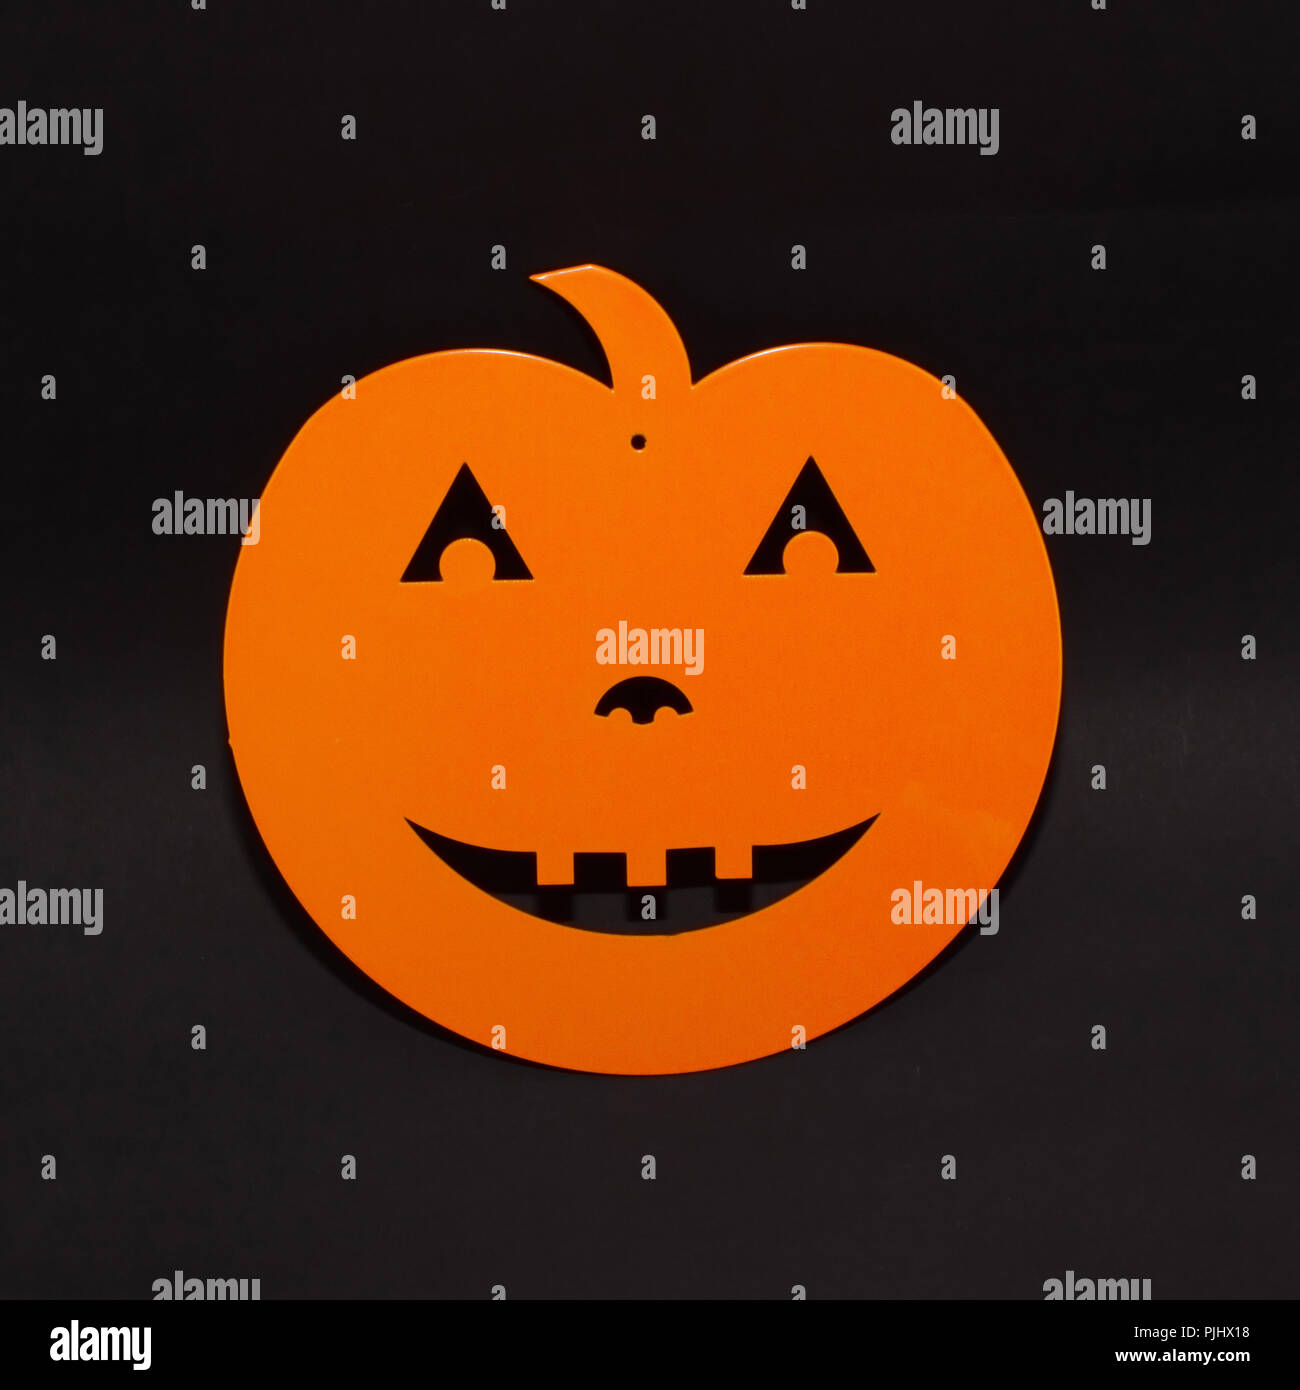 halloween background decor holiday concept orange pumpkin funny face shadow and silhouette on black background